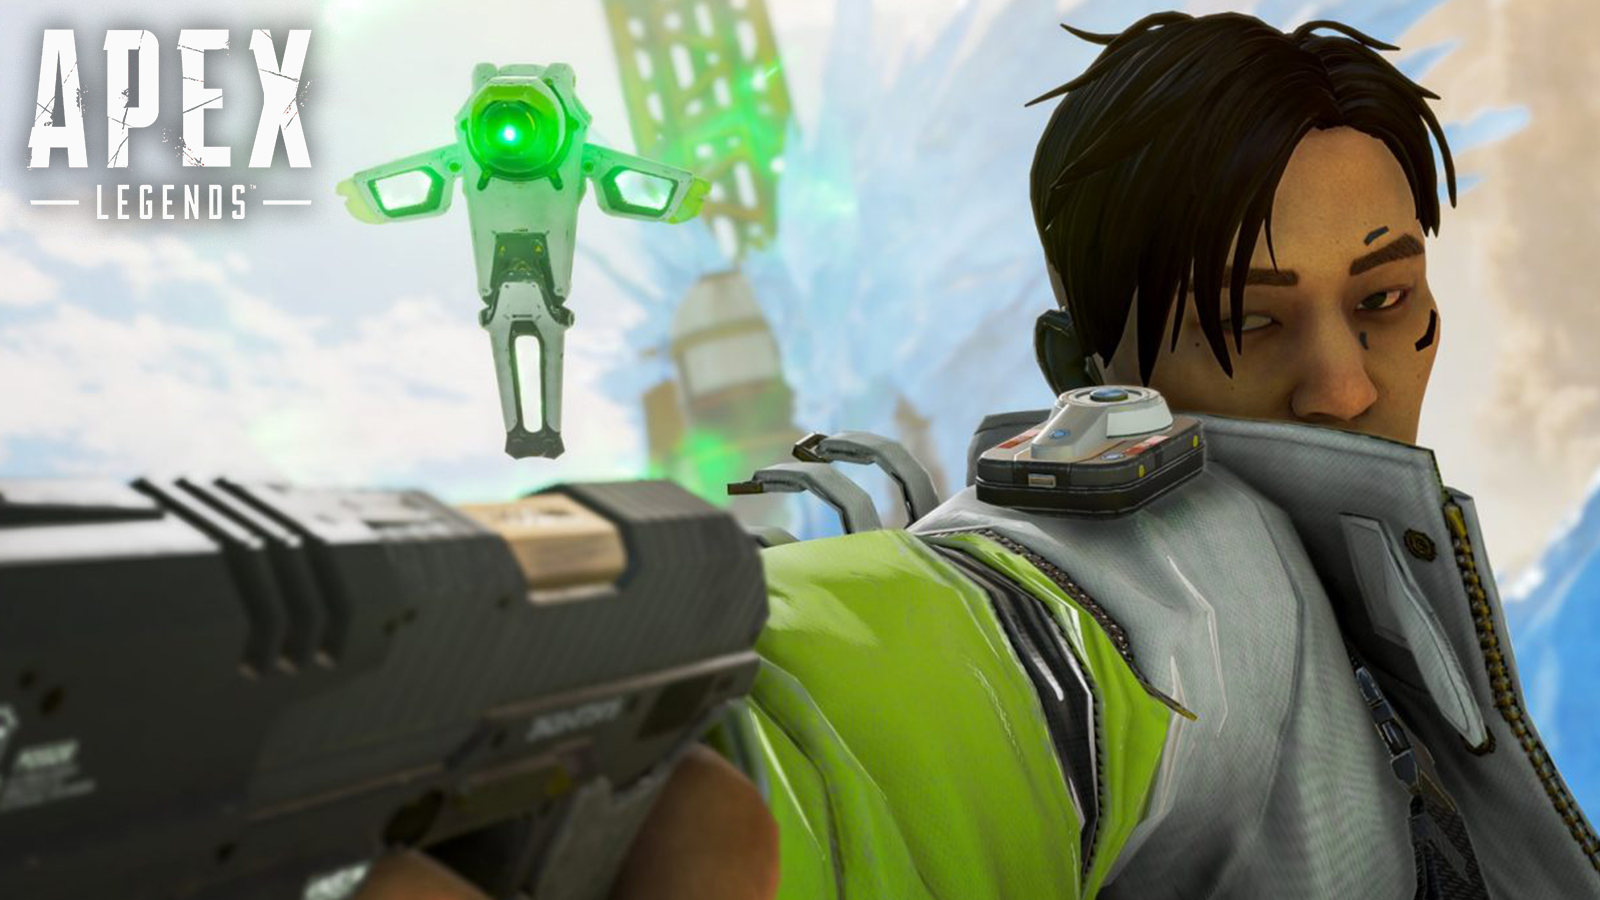 Crypto pointing a pistol in Apex Legends